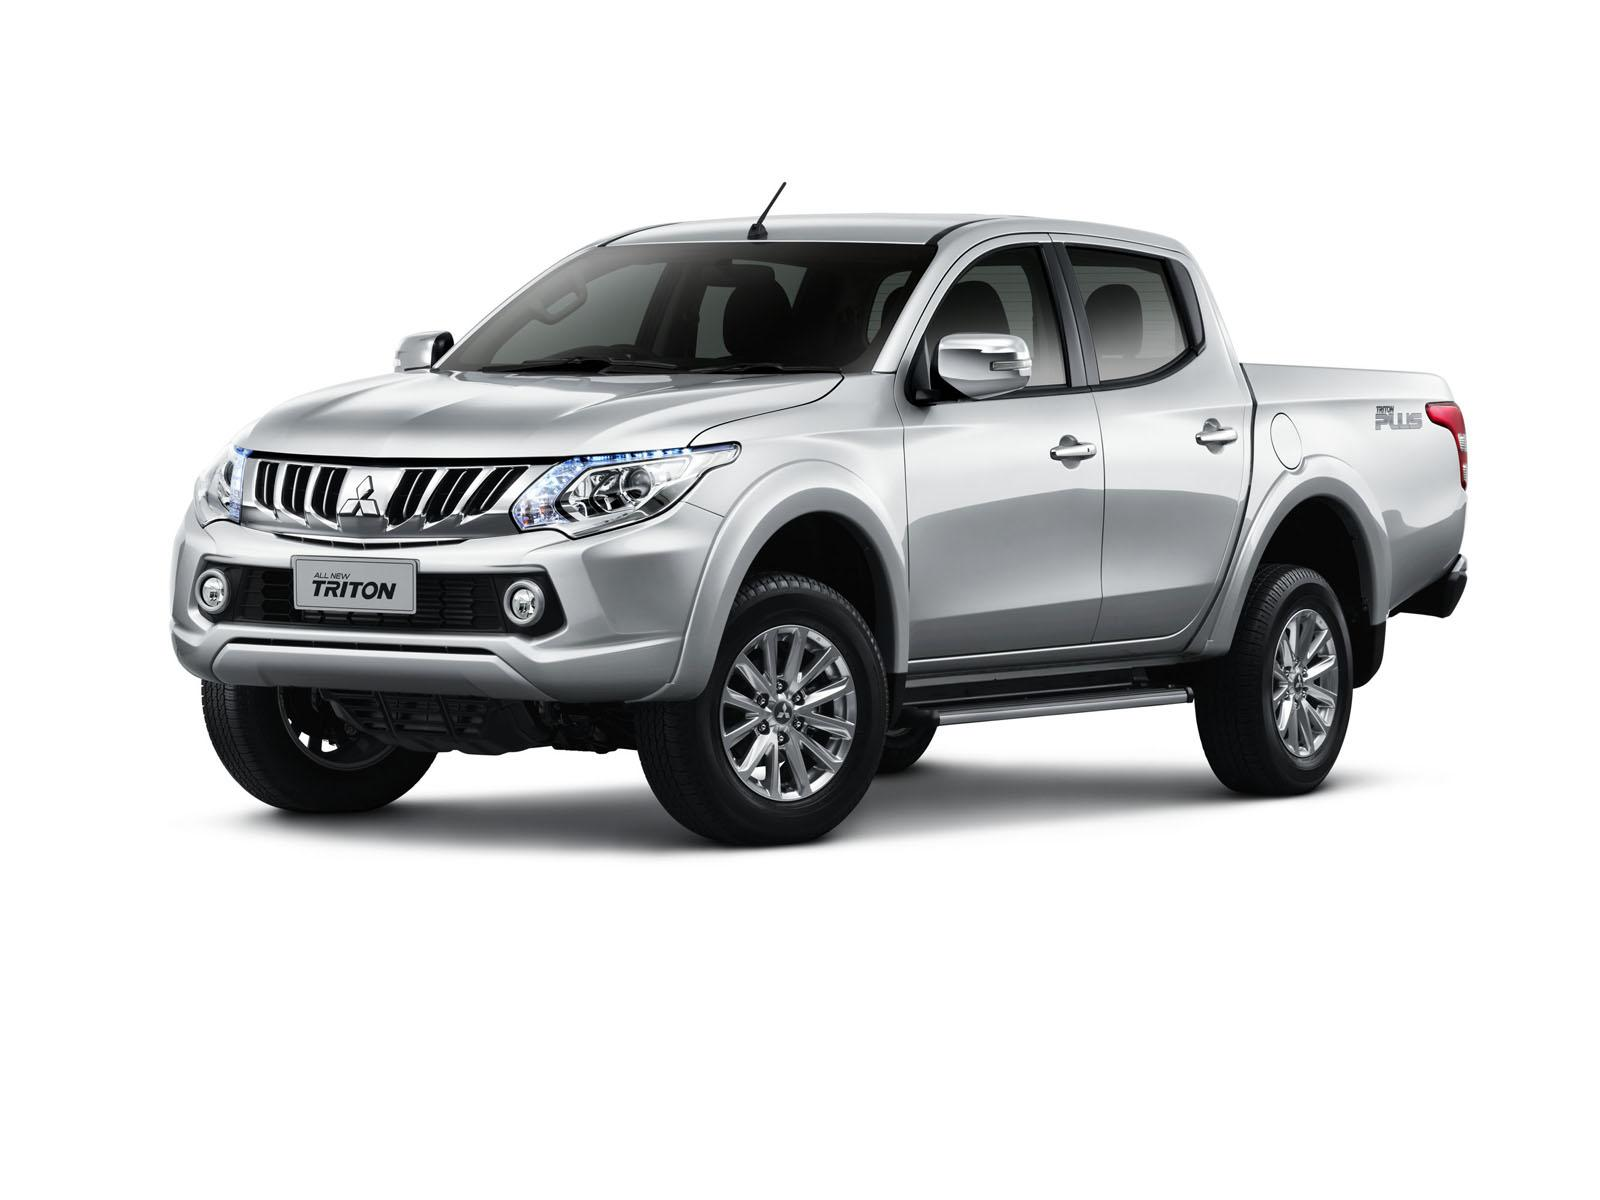 pickup stats model advice trucks cars reviews year used mitsubishi prices make specs faults